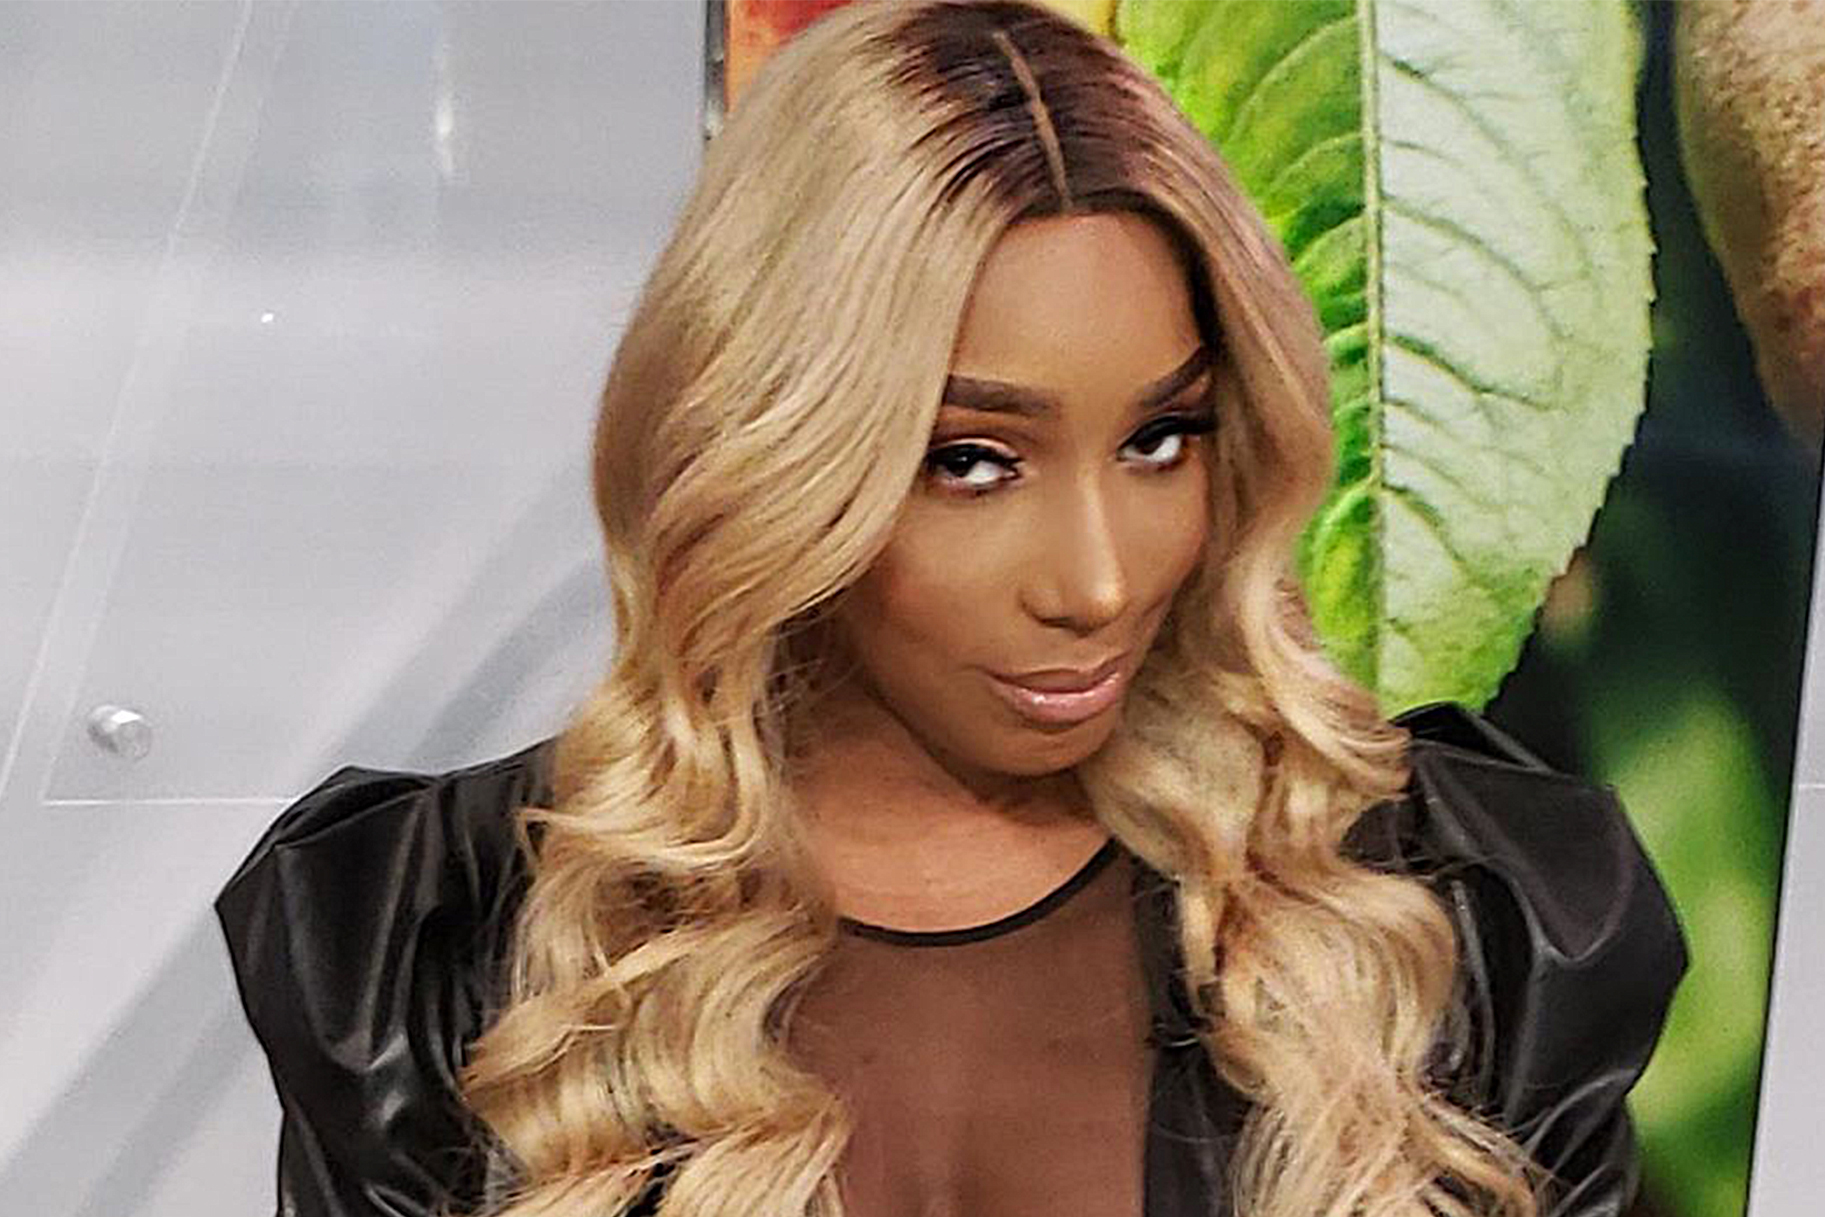 NeNe Leakes Shows Off A New Look During Her Video With Lamar Odom And Sabrina Parr - See The Clip Here!